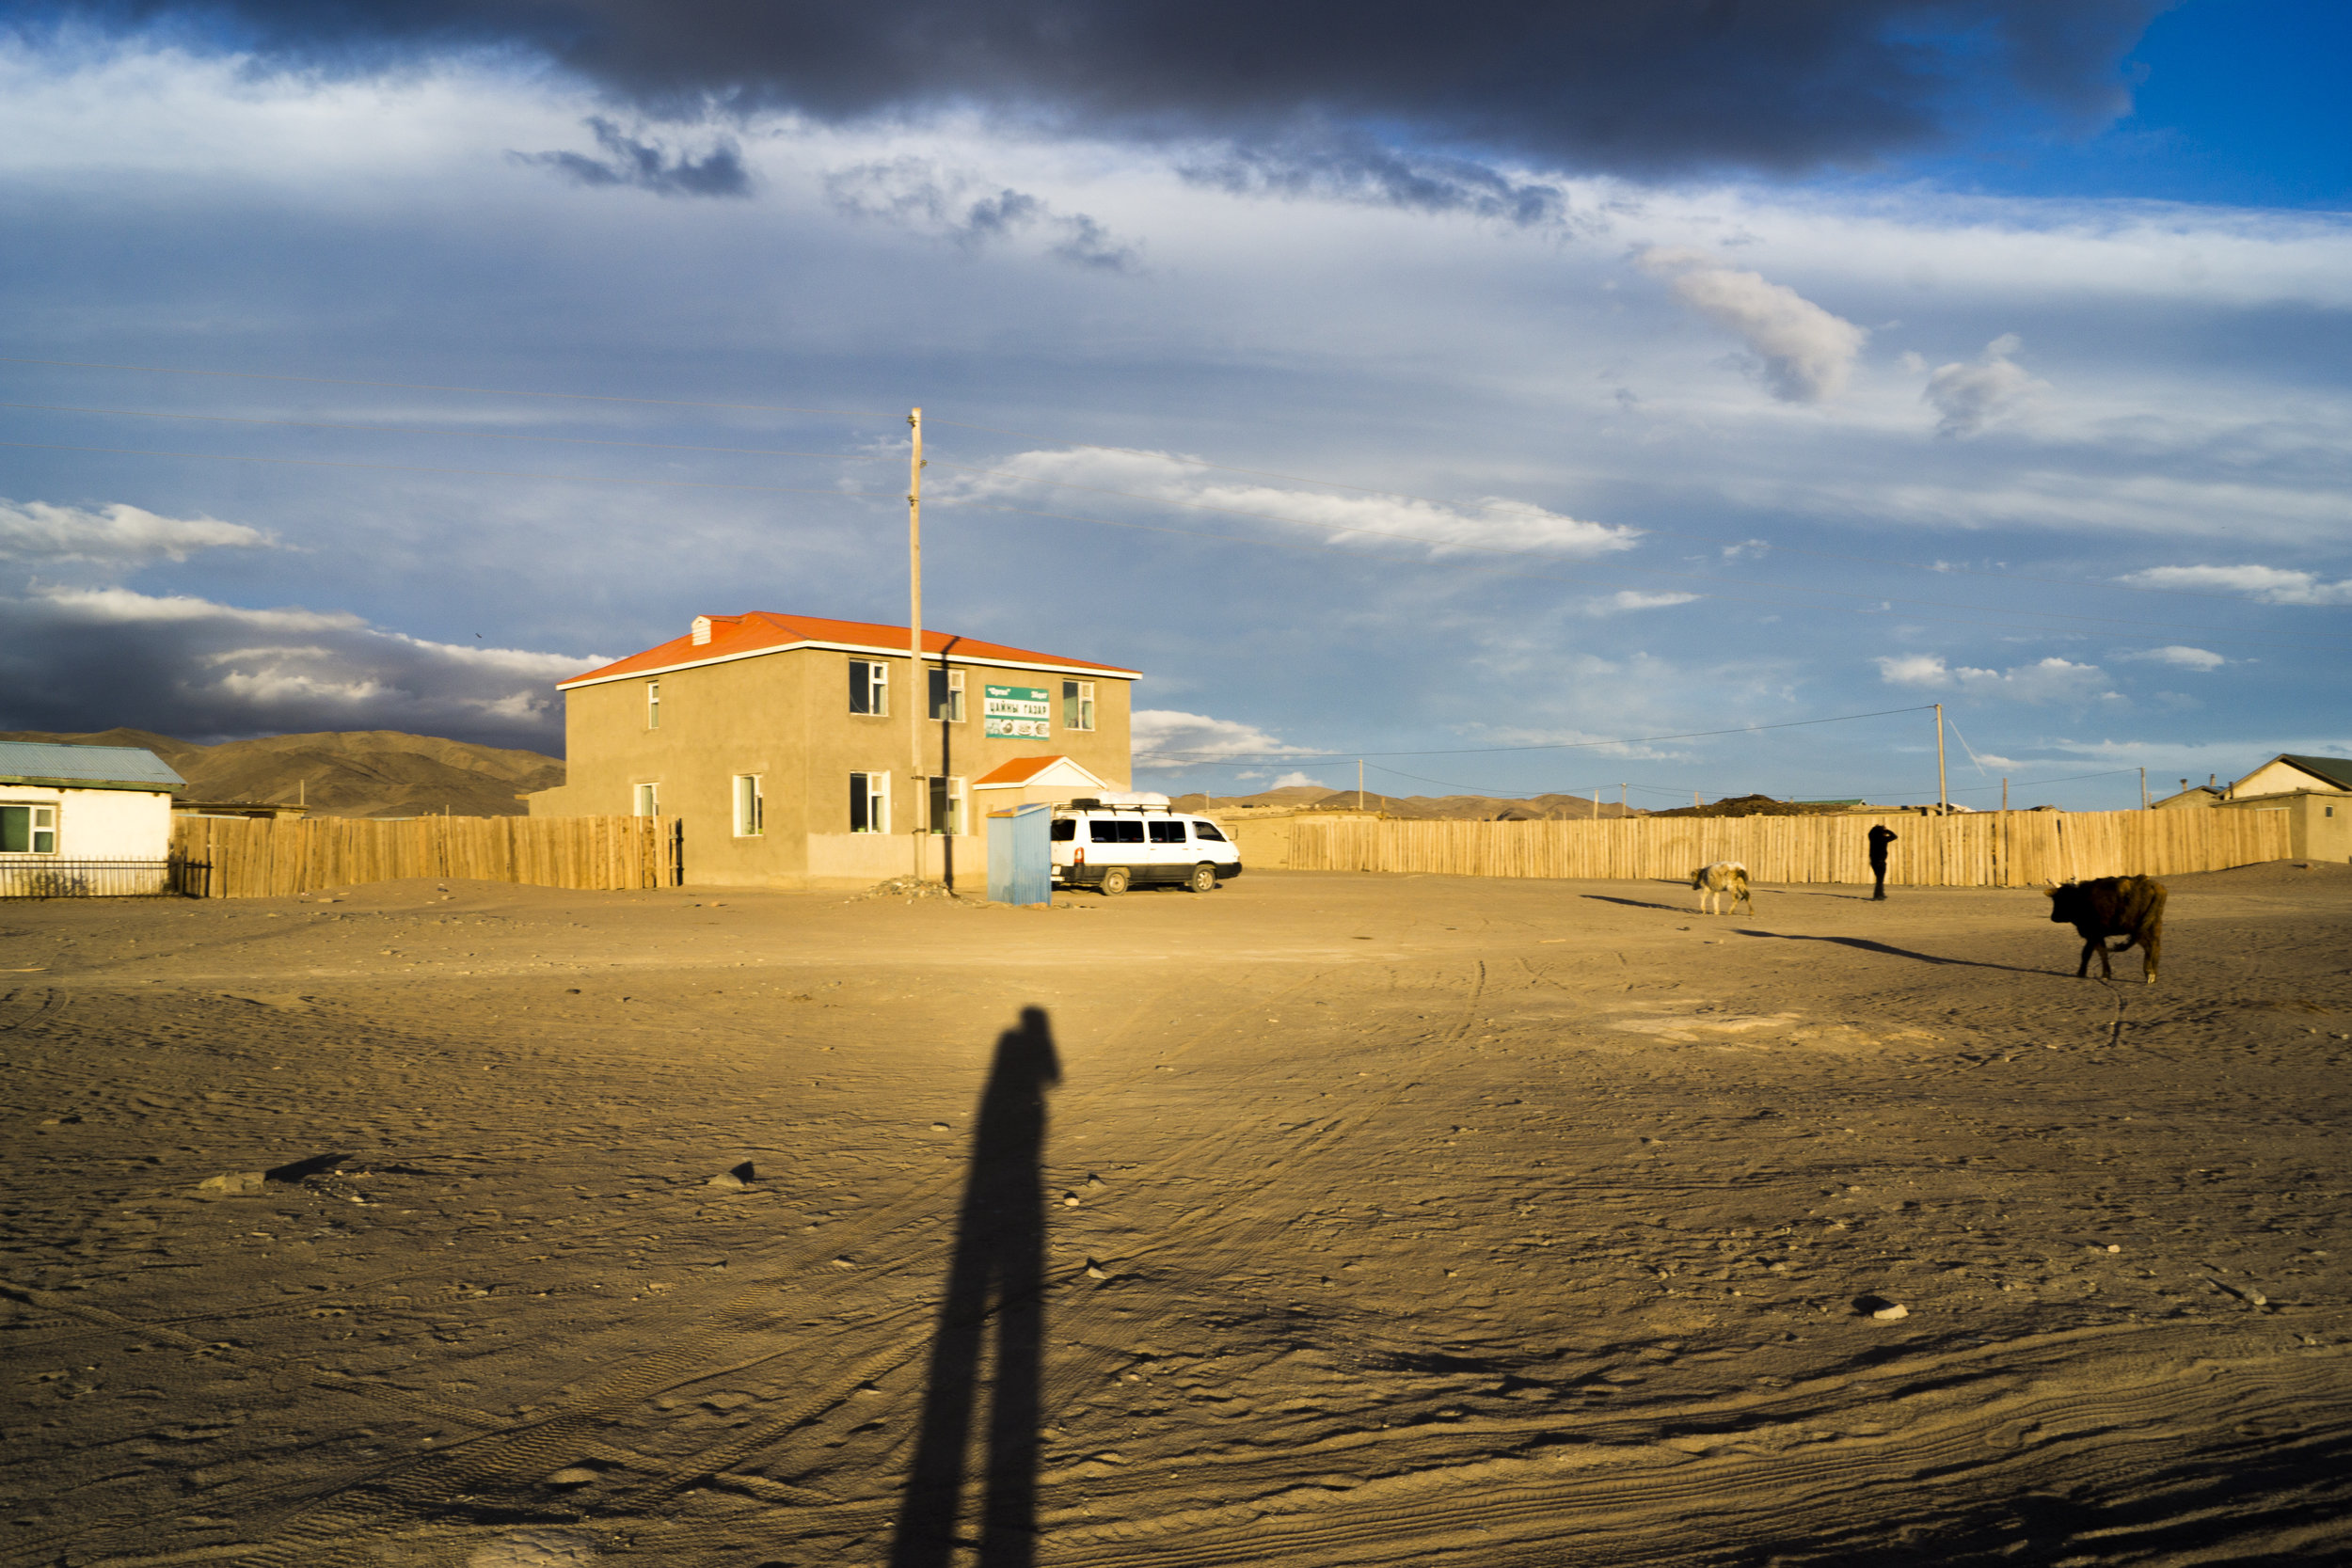 Uulgii, southern Ulaangom Province, just before sunset. The small minivan that brought me there at my shadow's end.